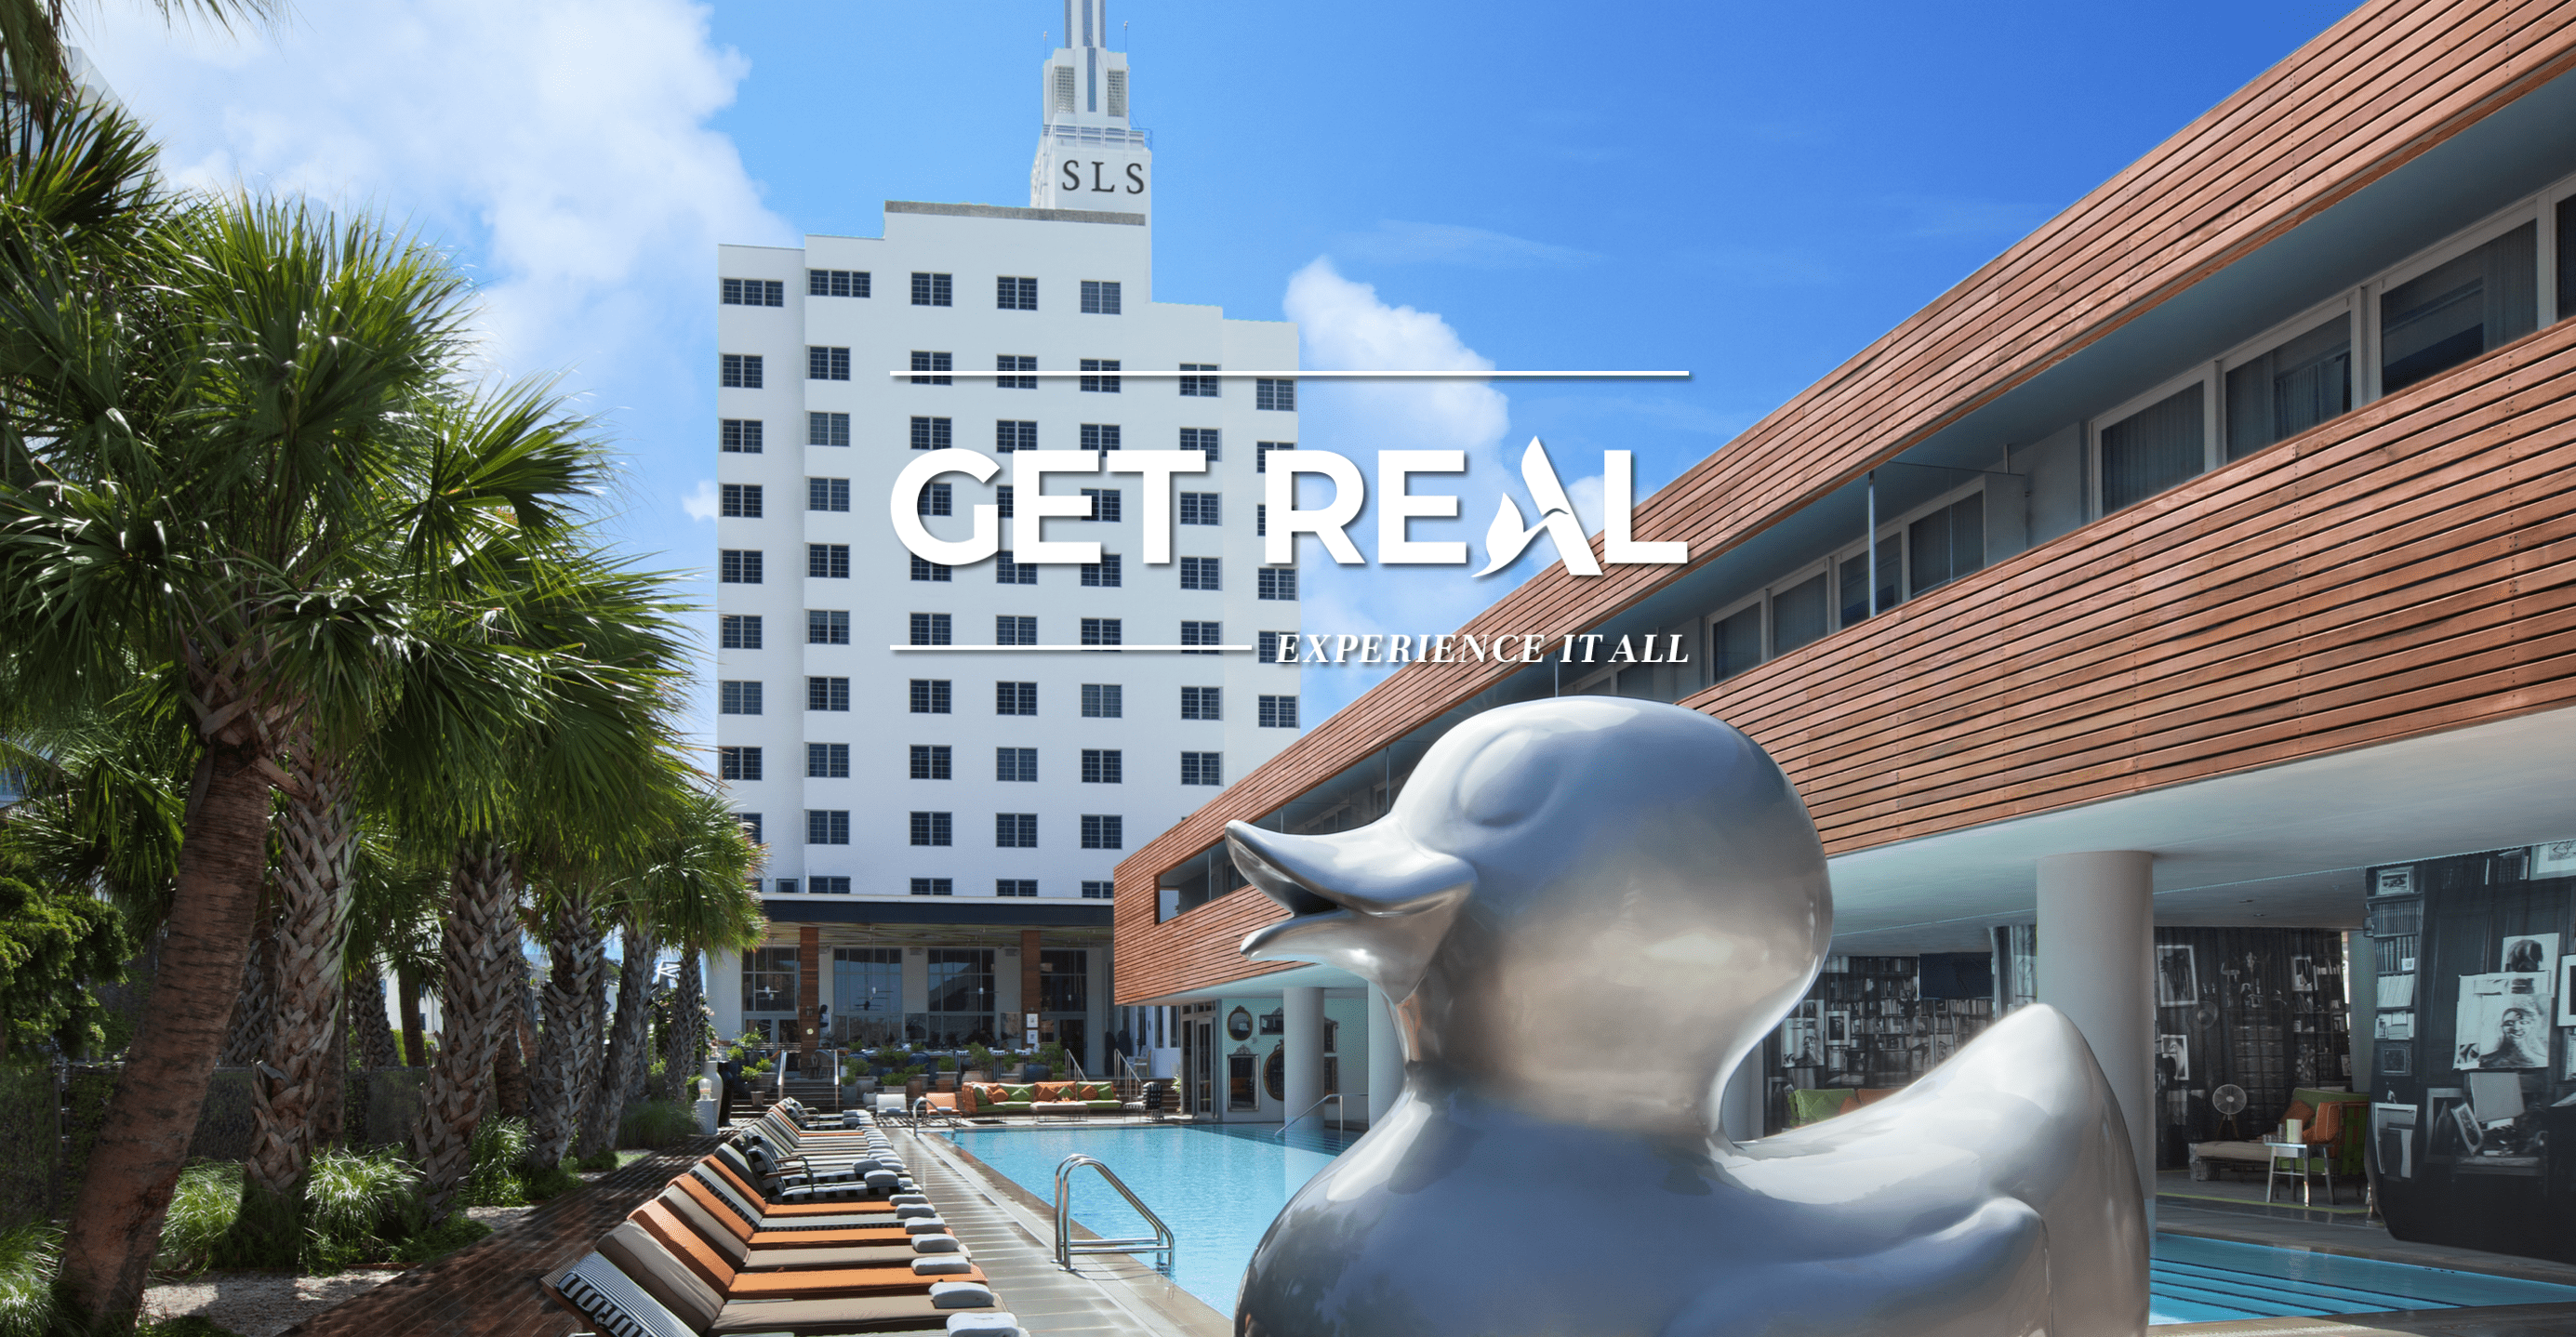 SLS South Beach Get Real Experience it ALL